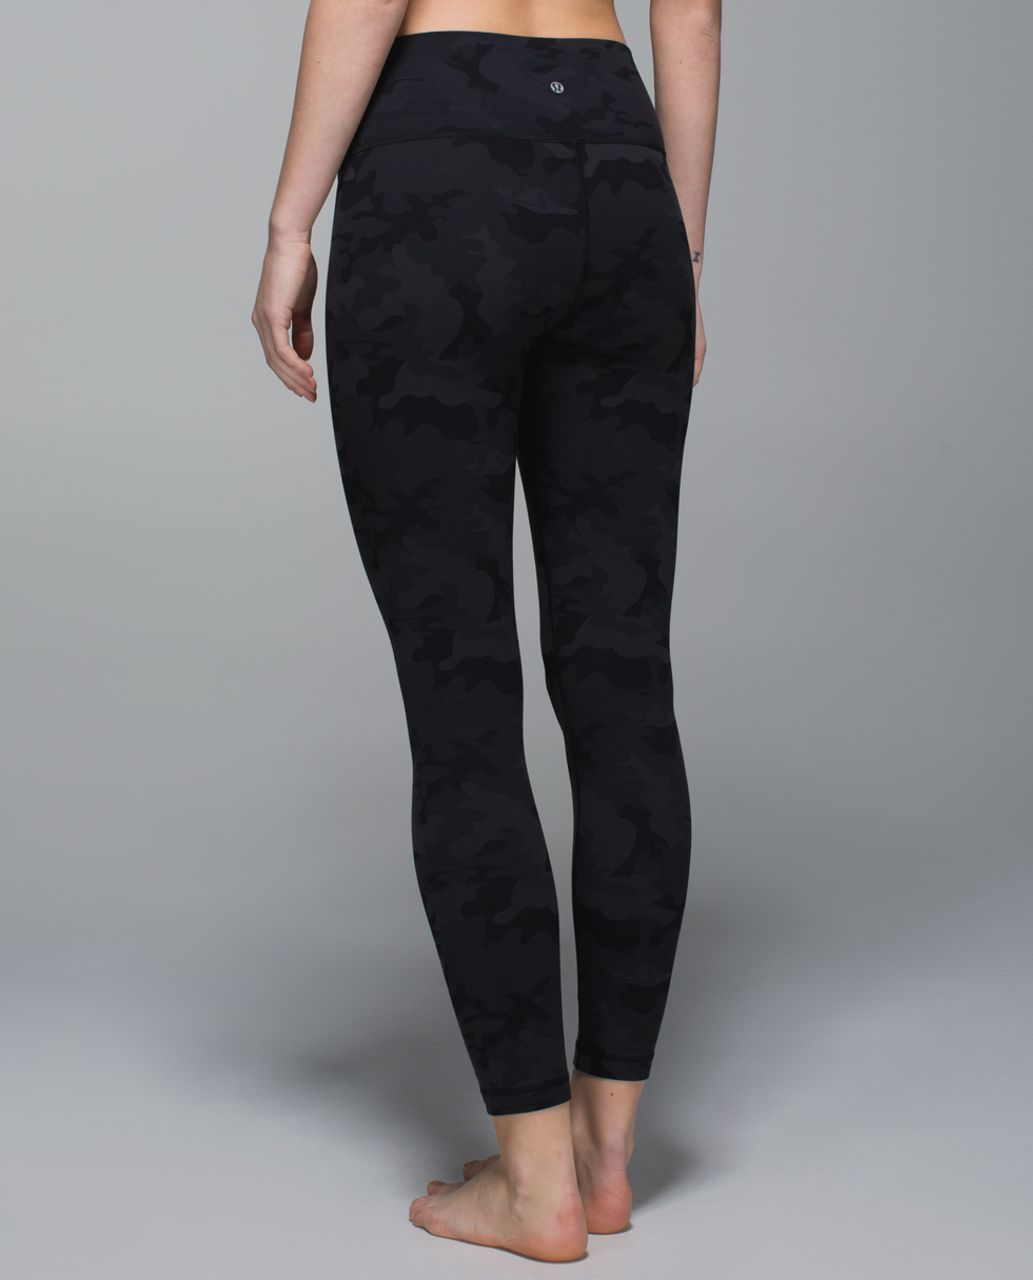 Lululemon High Times Pant - Savasana Camo 20cm New Black / Soot